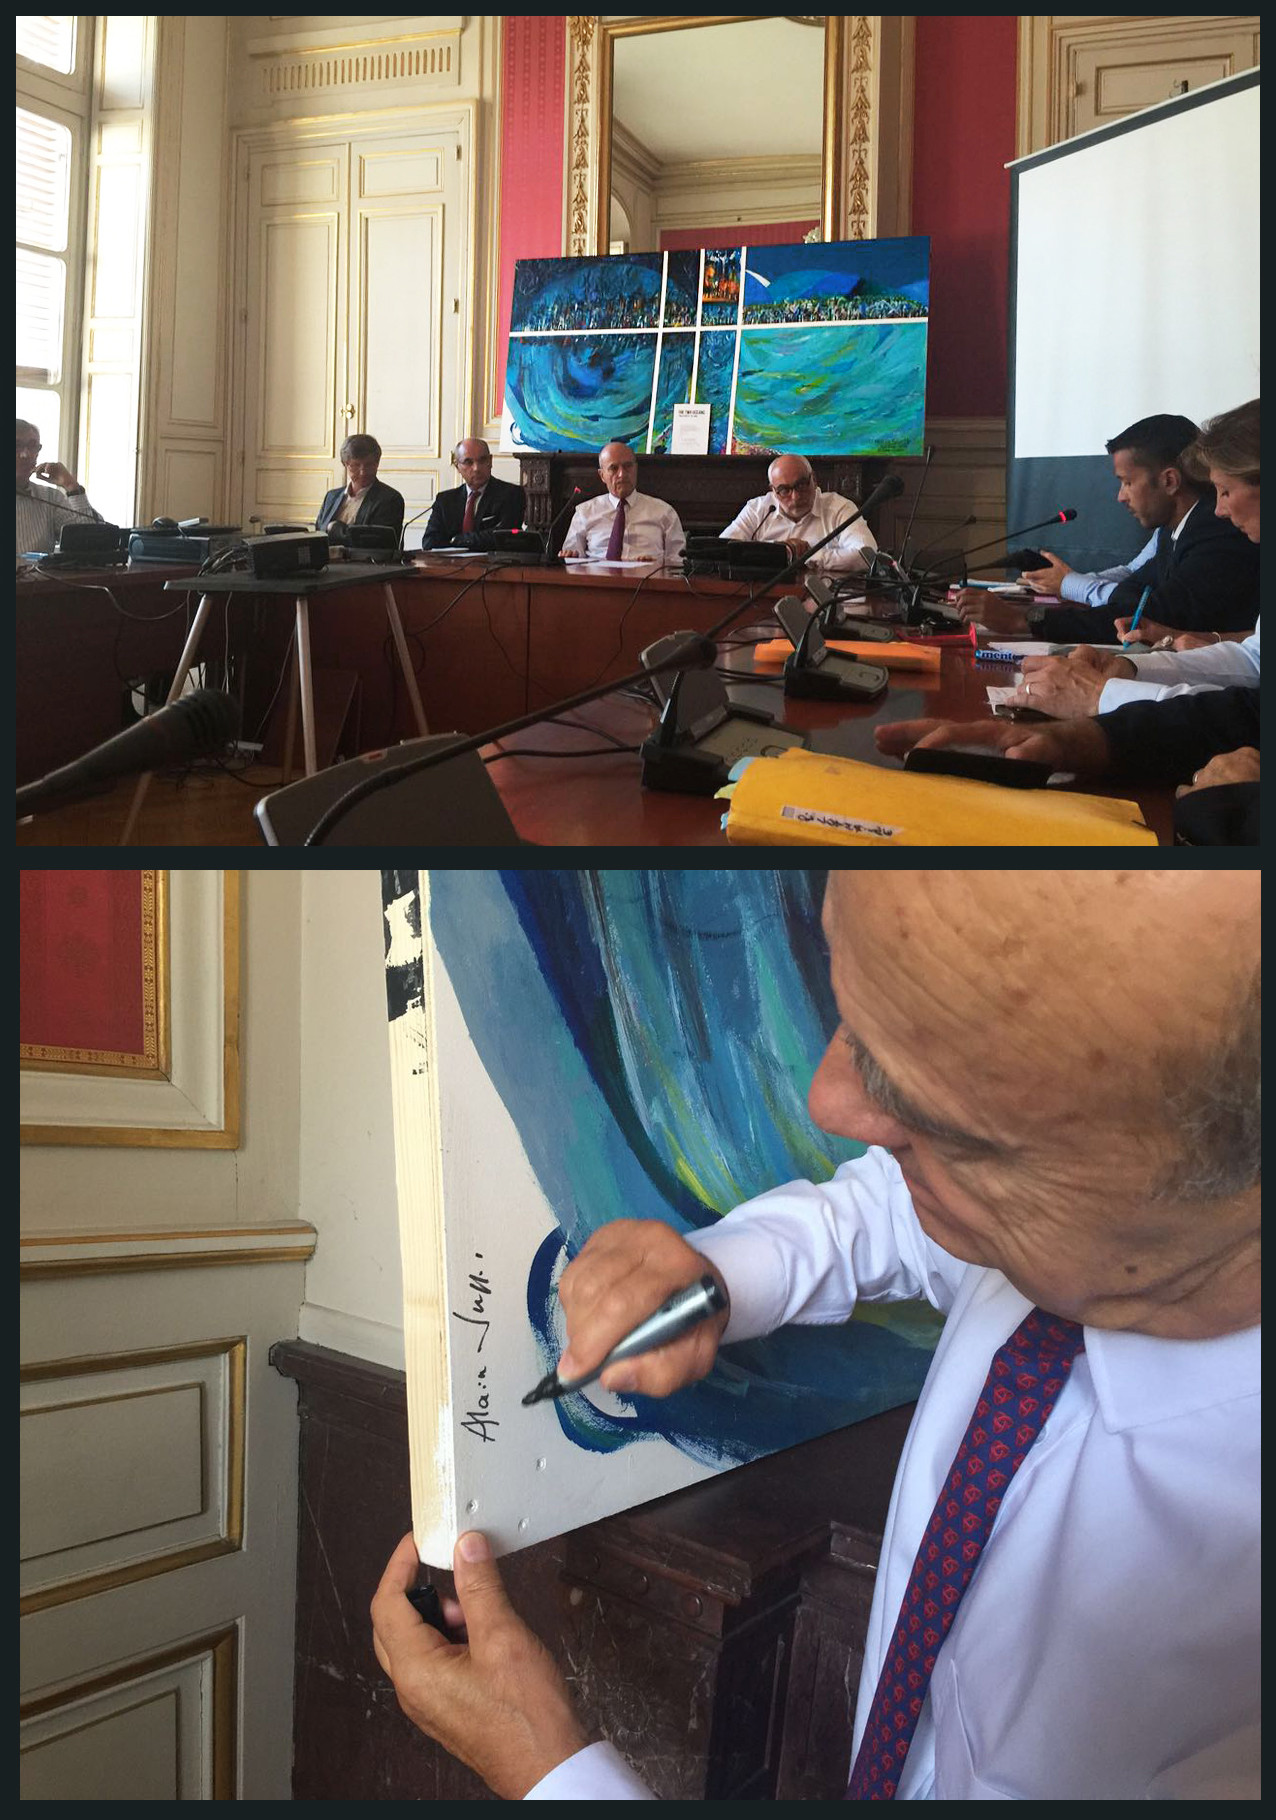 Emerging Artist Sri Lanka Climate Change Conference Alain Juppe French Presidential Candidate Bordeaux France Meeting Signing